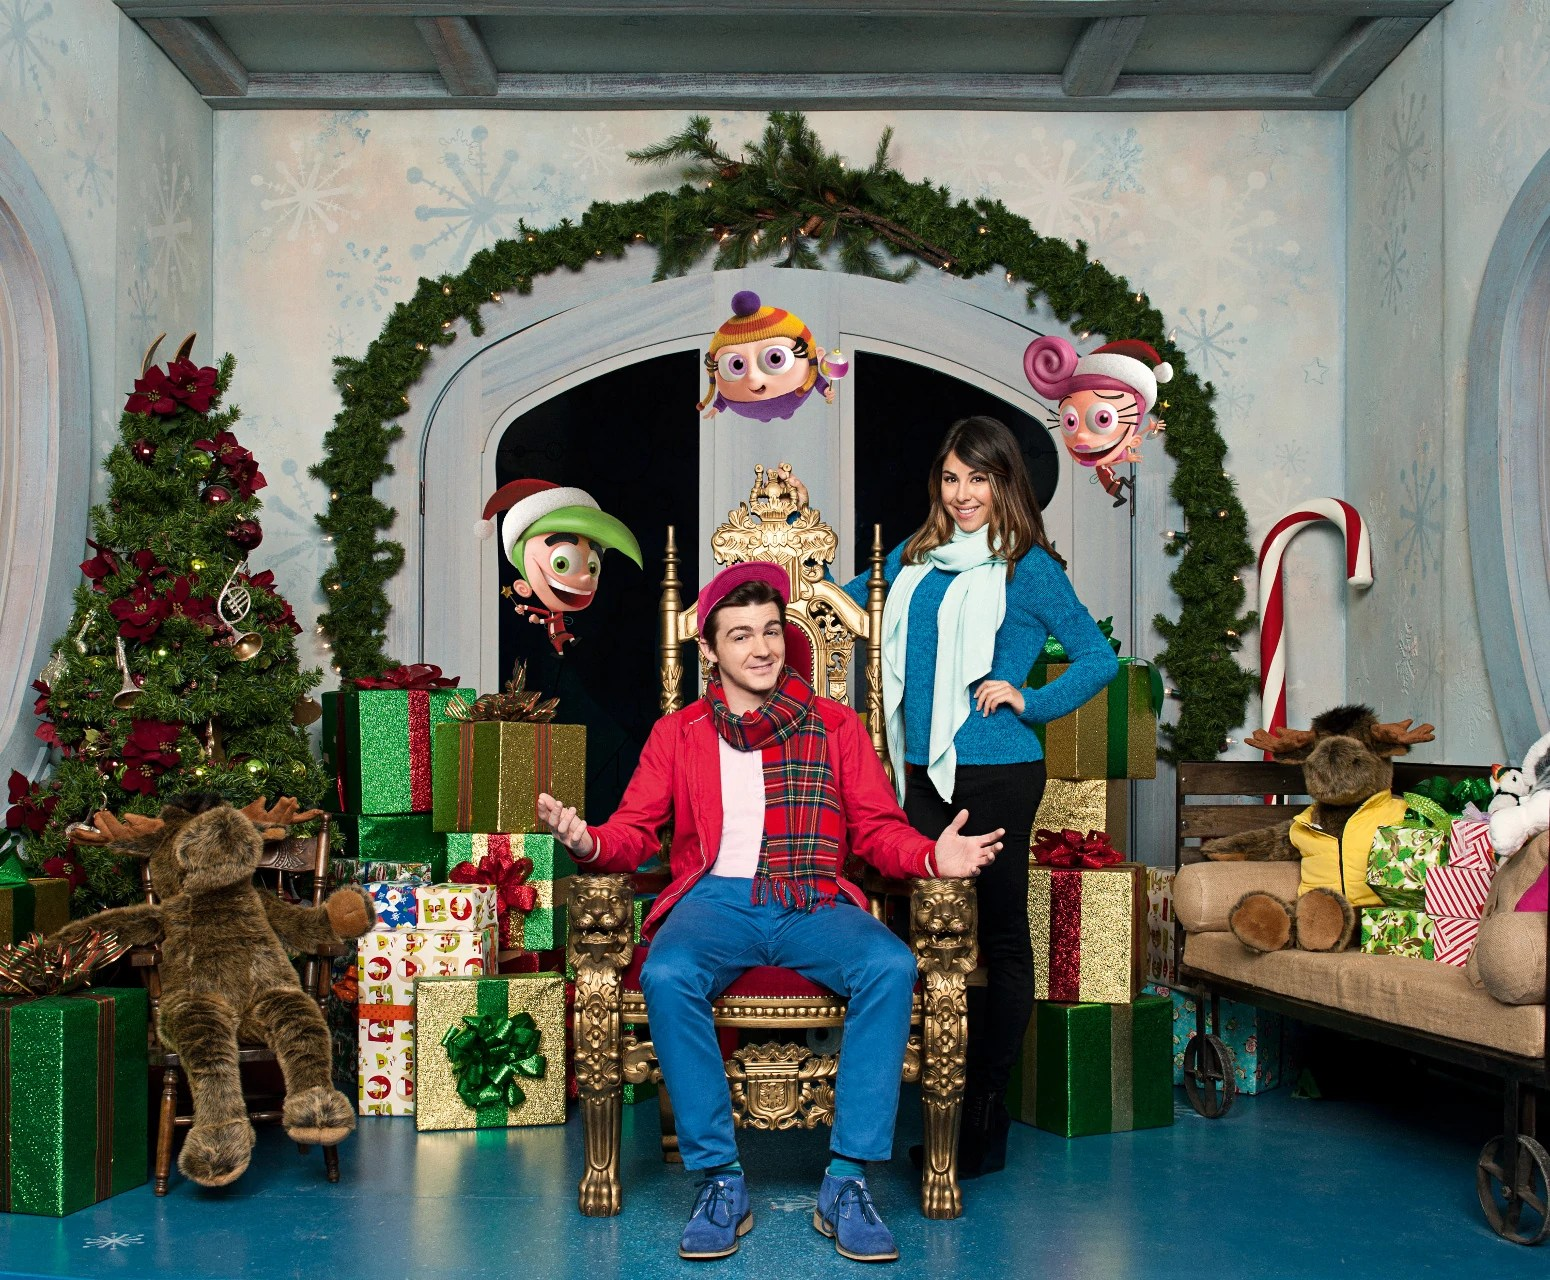 A Fairly Odd Christmas Promotional